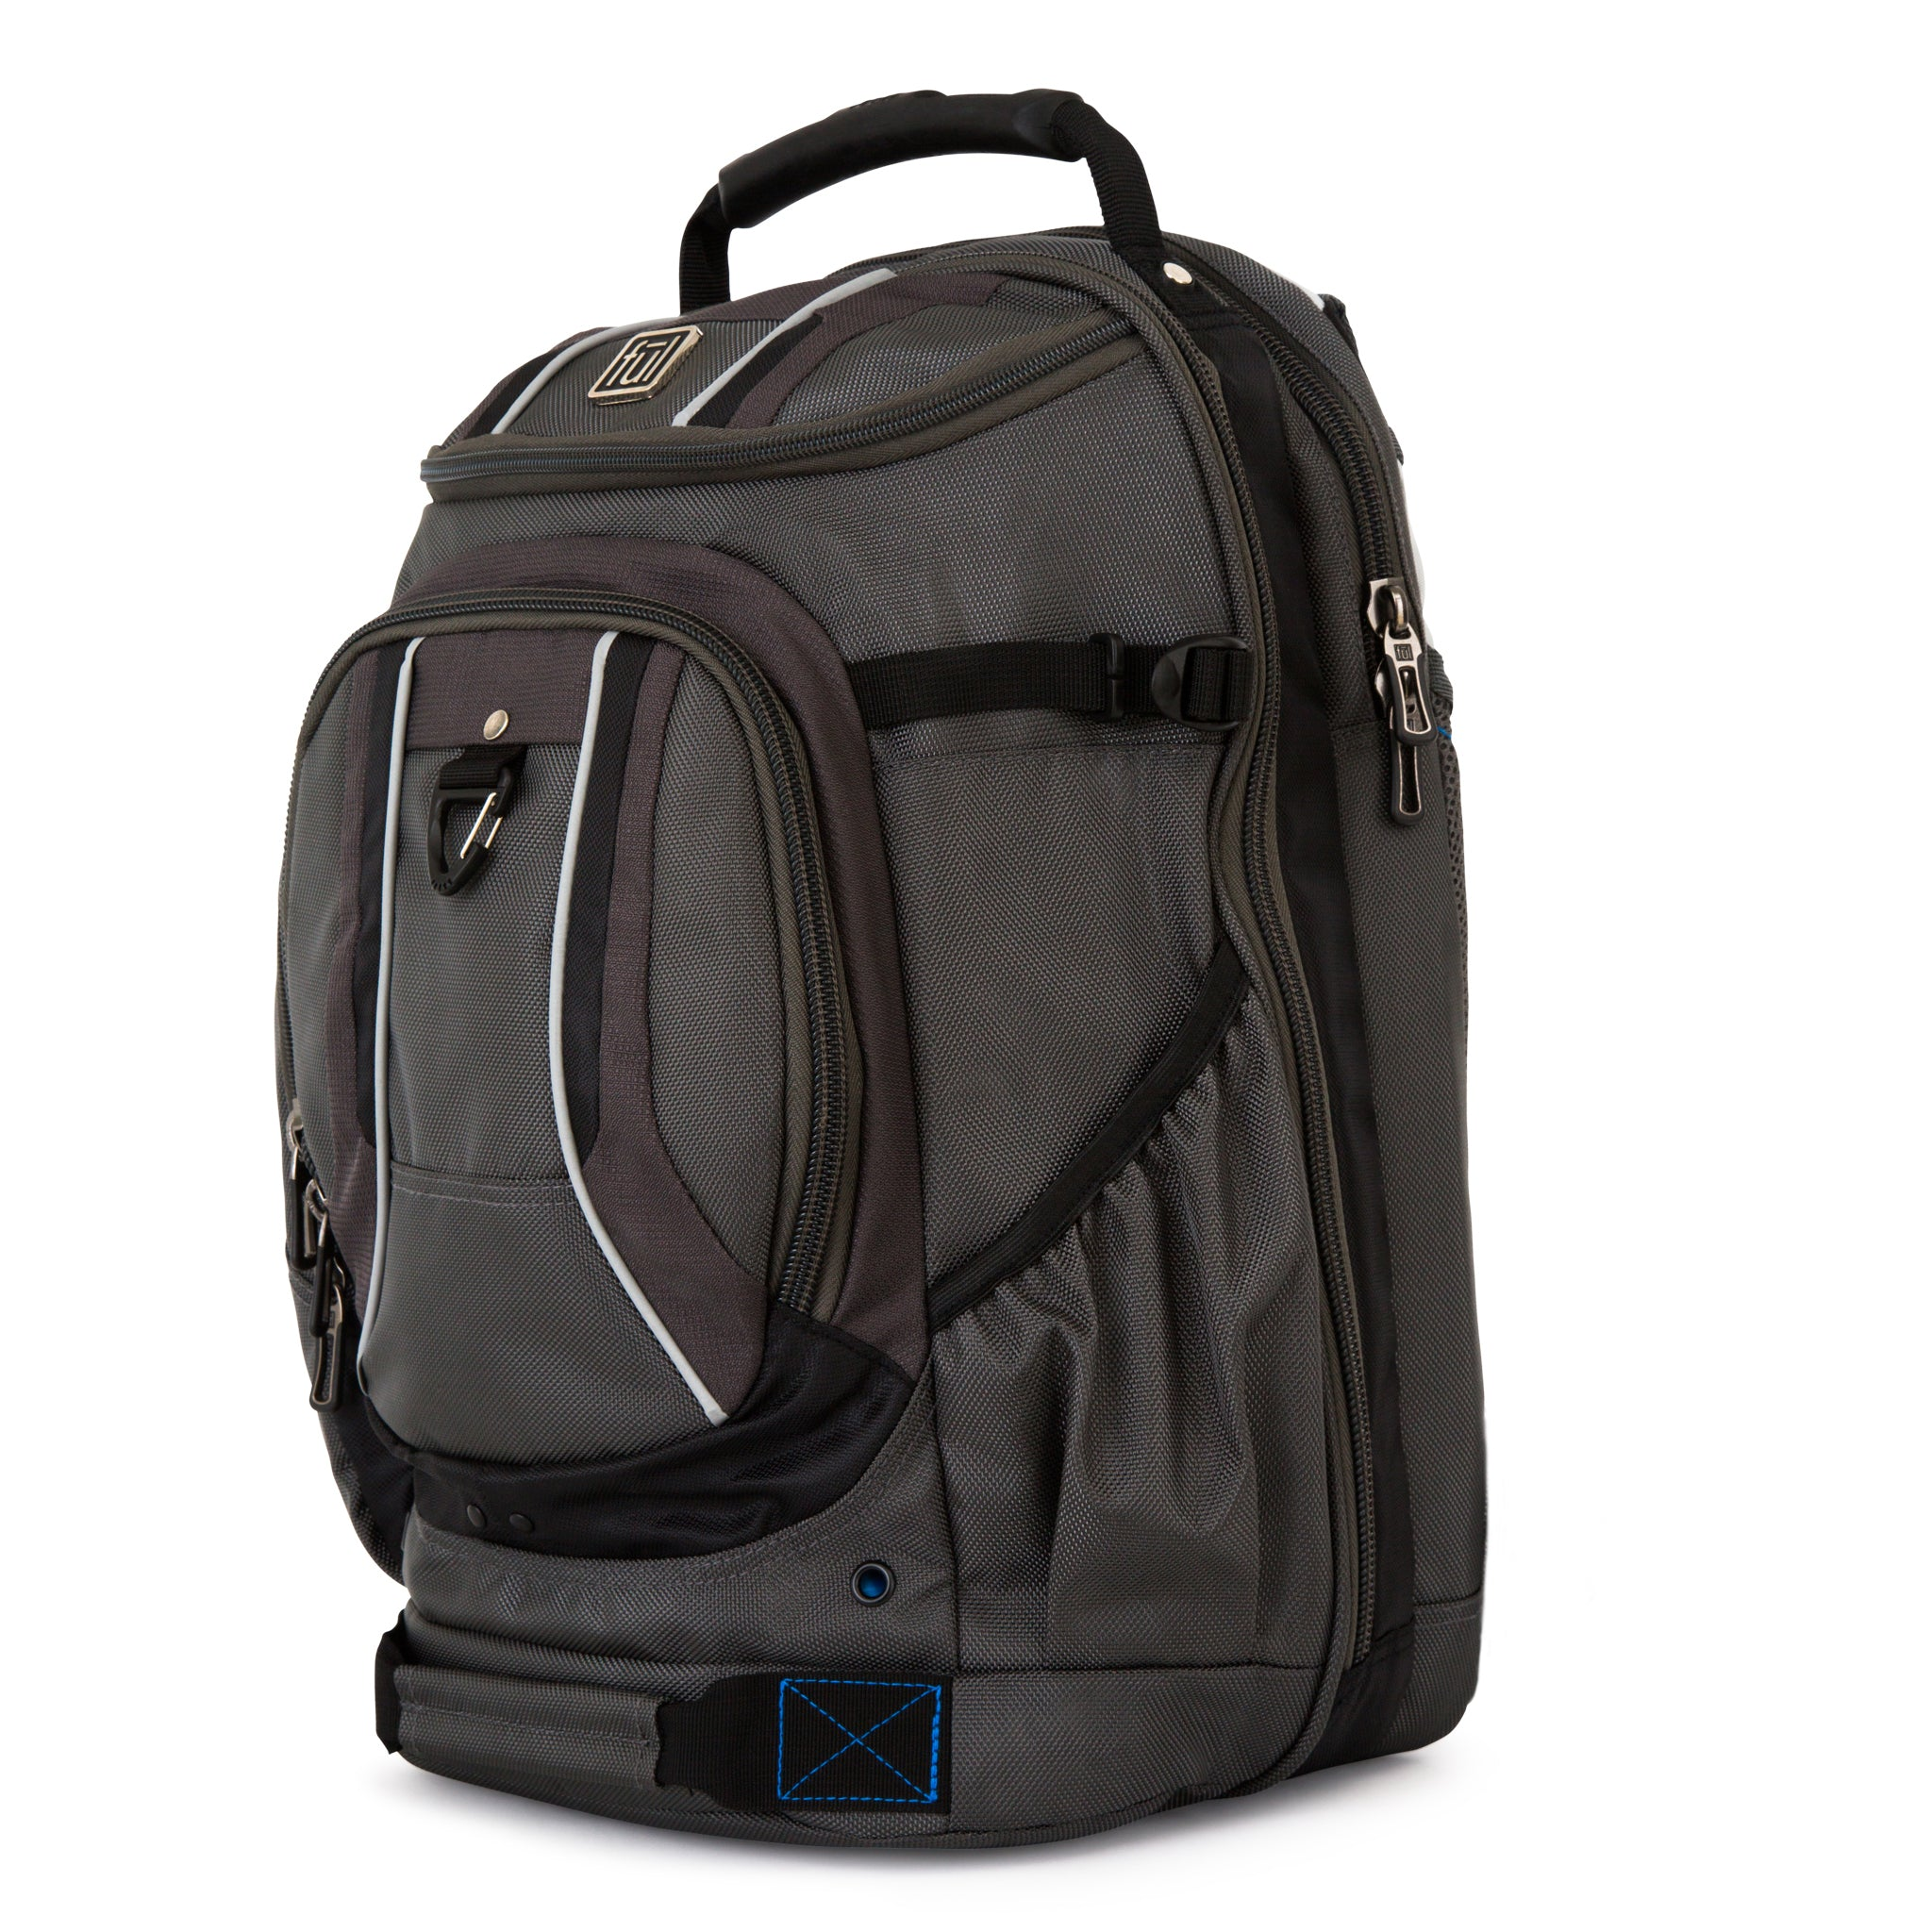 Load Factor Padded Laptop Backpack - Ful Luggage 09cea1864